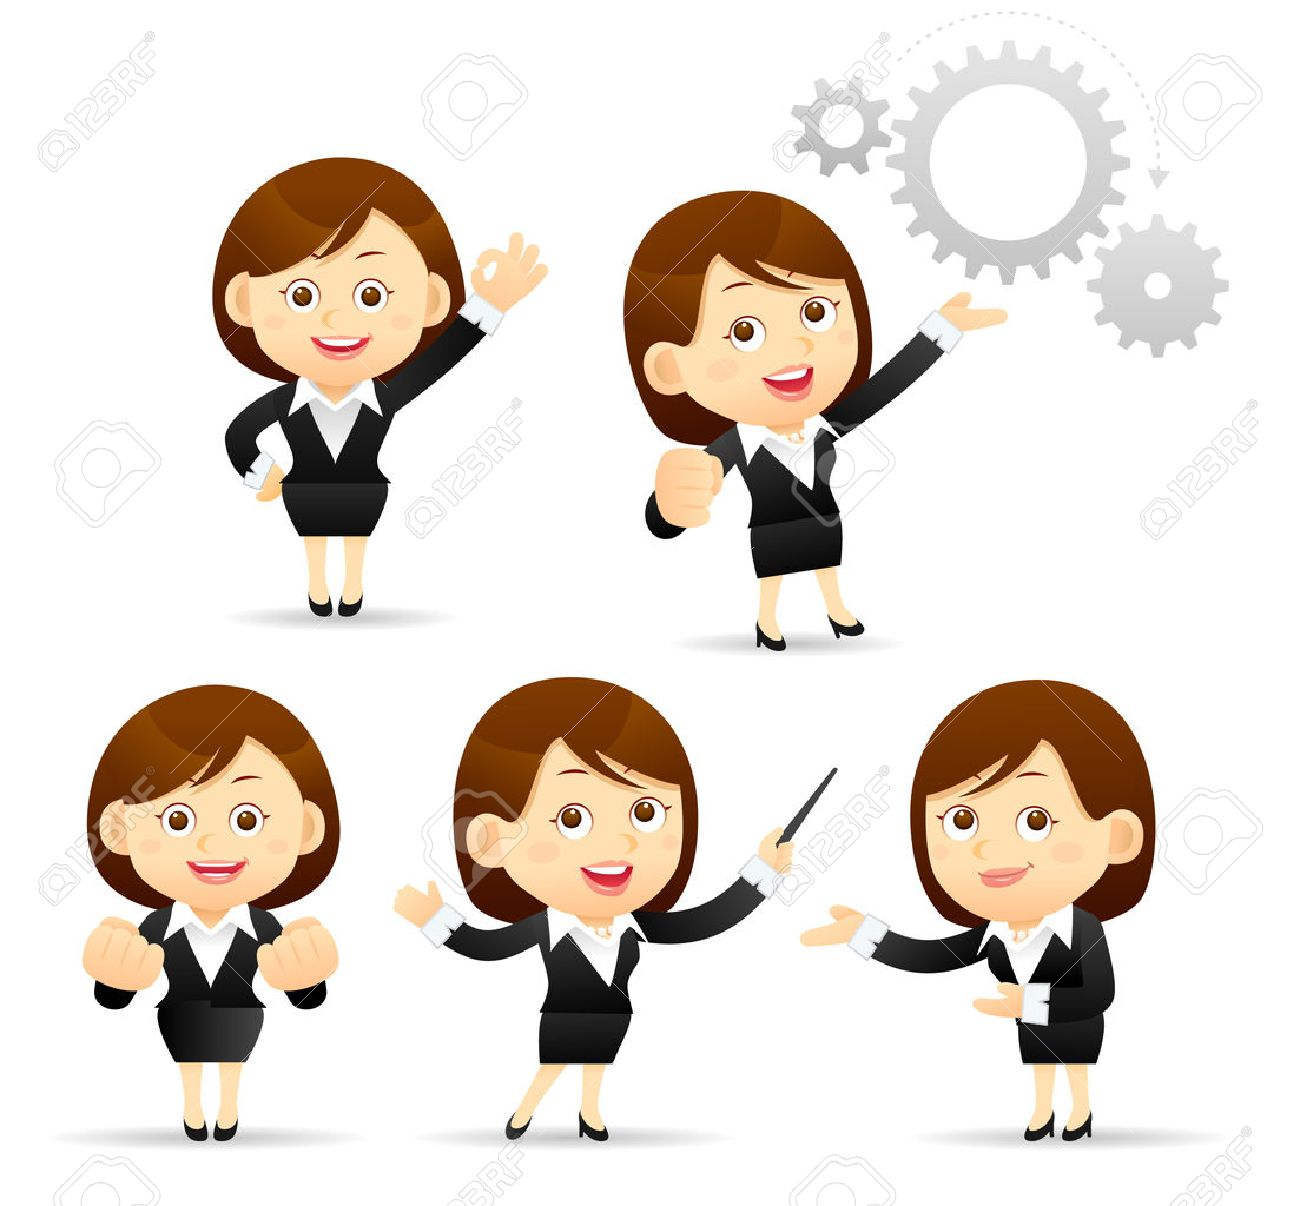 vector illustration of cartoon businesswoman set royalty free